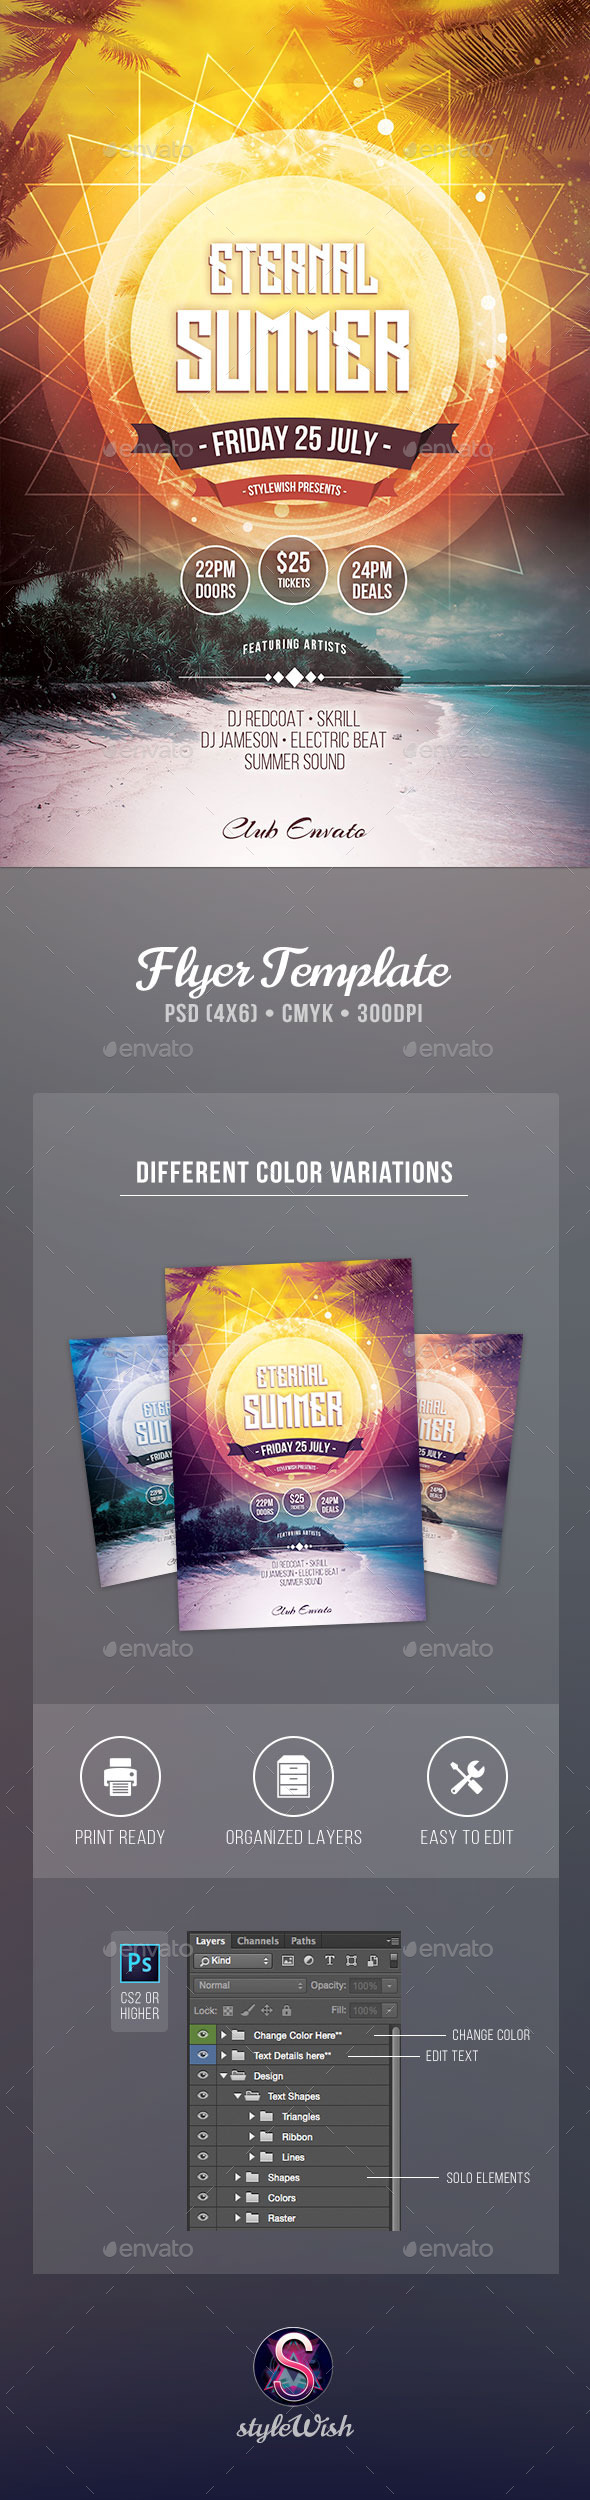 GraphicRiver Eternal Summer Flyer 11891822